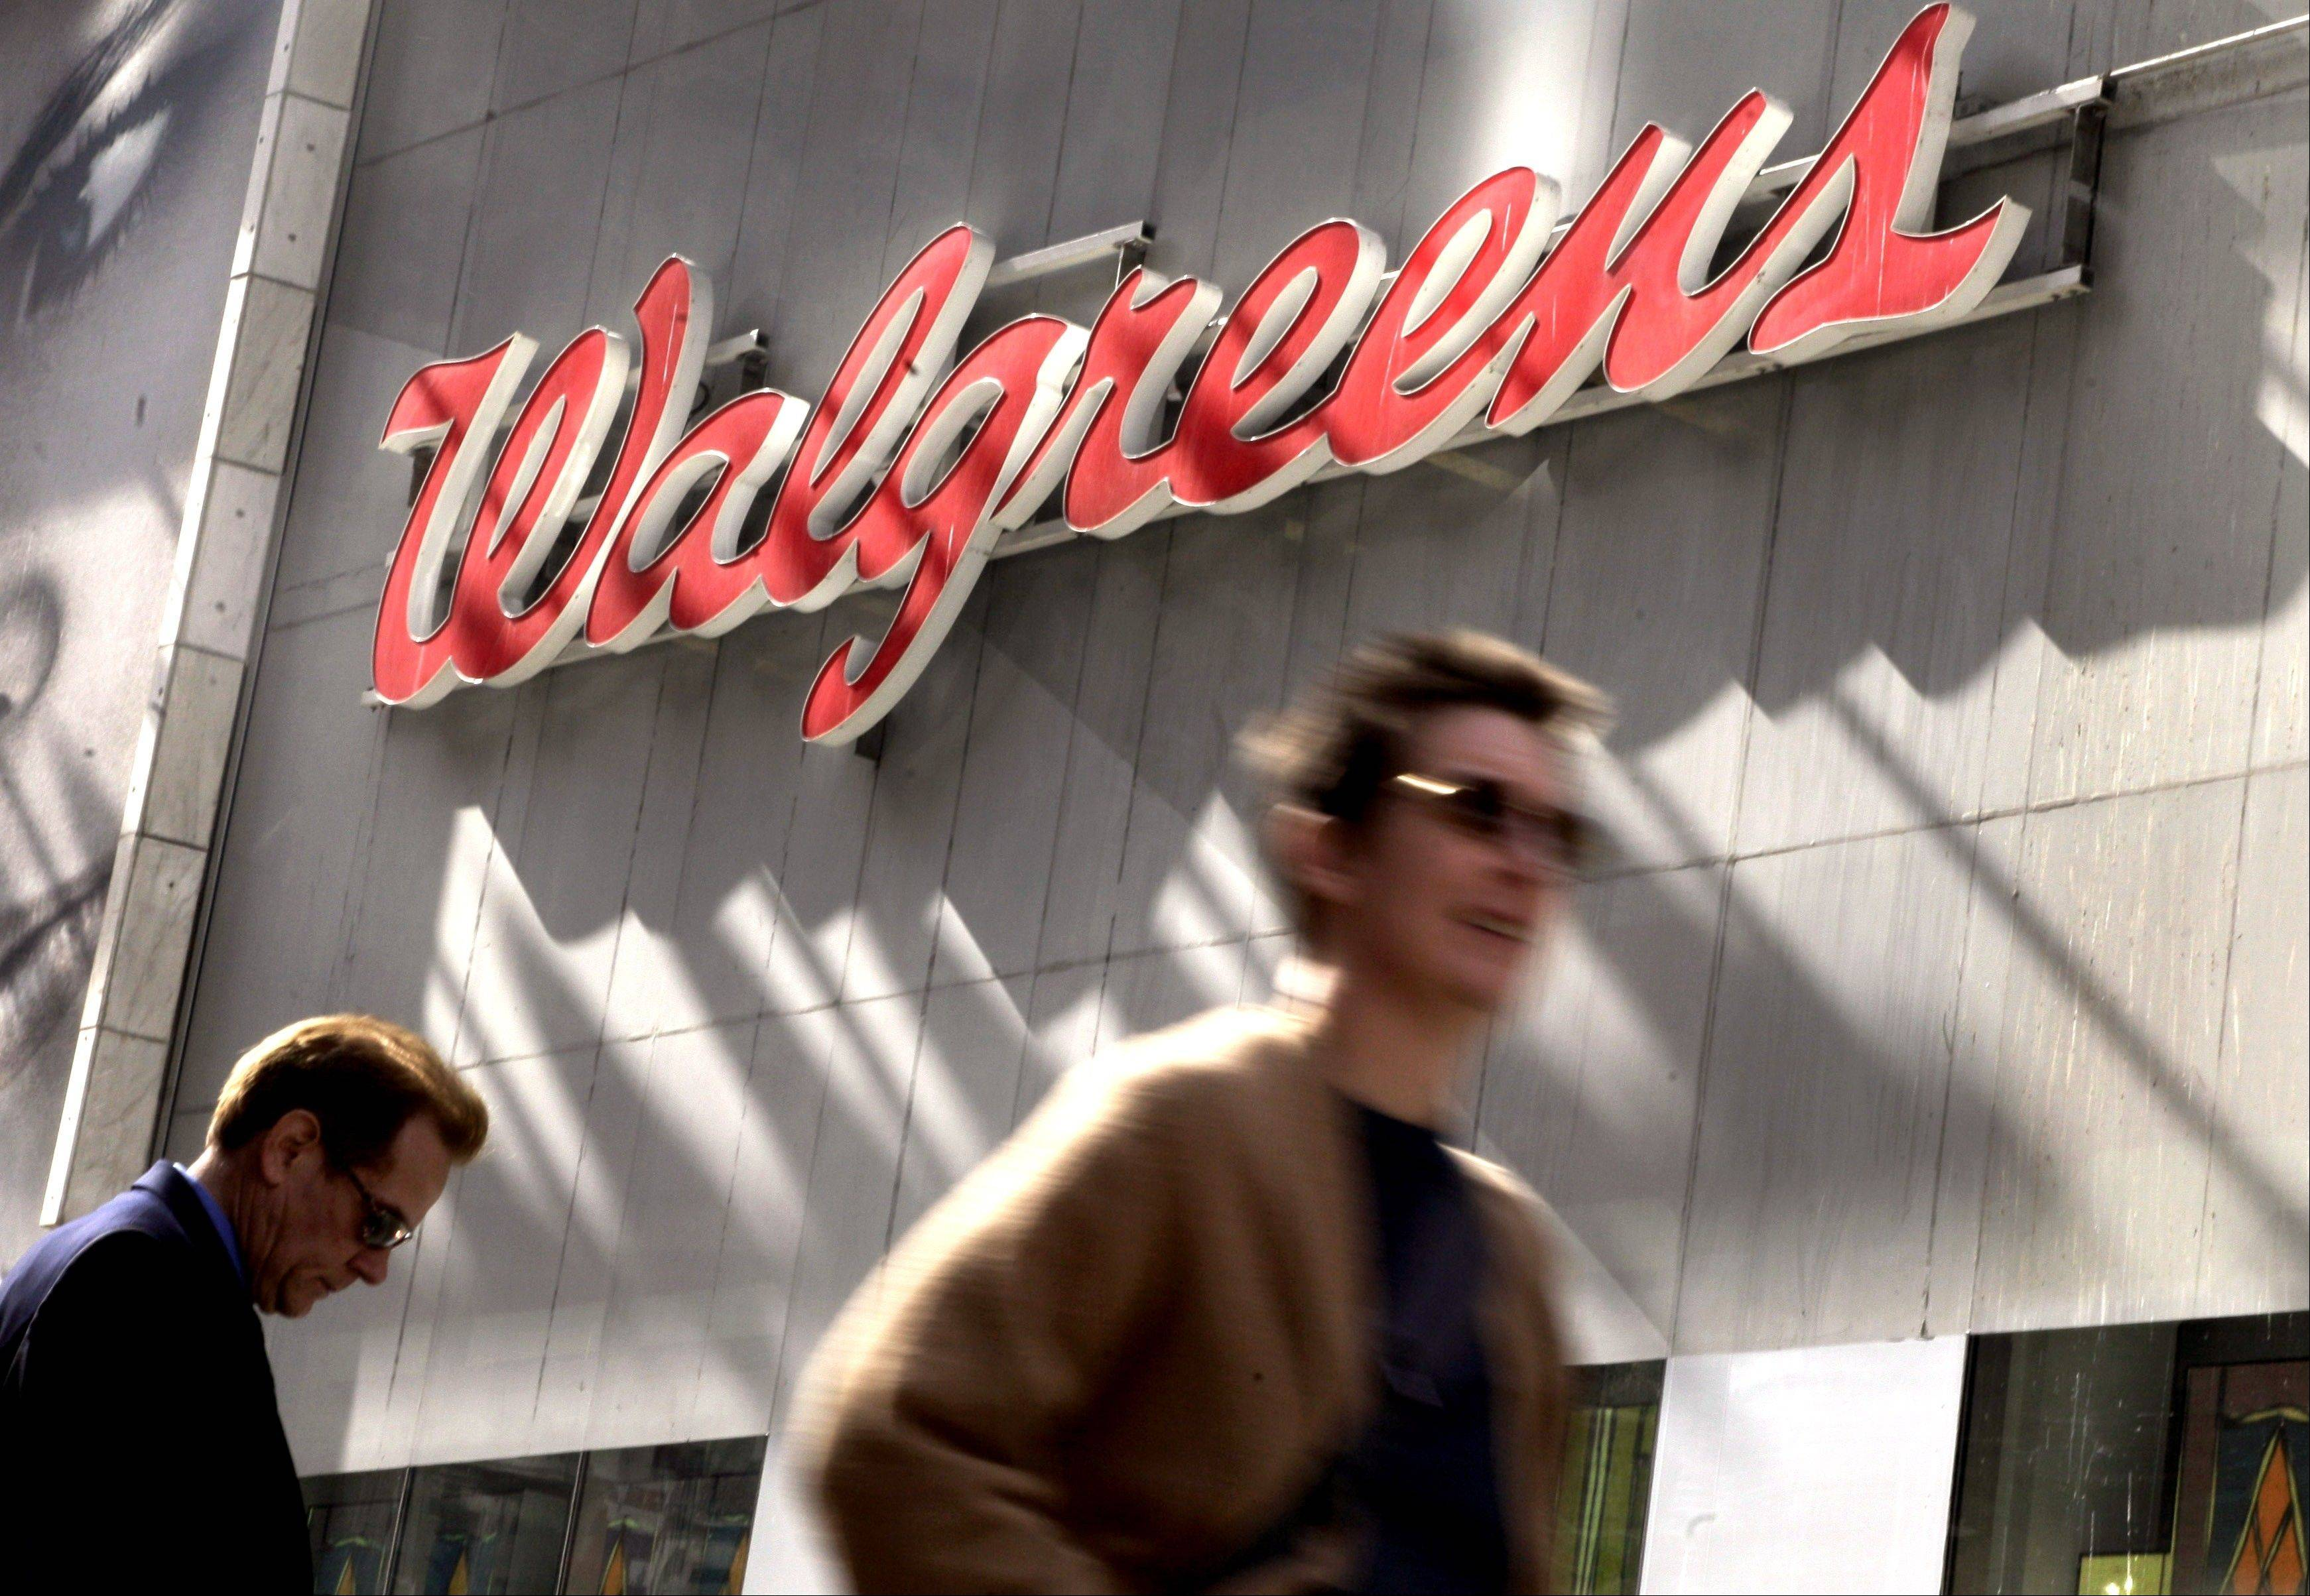 Walgreens wants to reward customers for merely taking a walk, and Rite Aid will help cover trial gym memberships for some of its frequent shoppers. All the national drugstore chains now offer a free customer loyalty program loaded with incentives to use their cards. Walgreen Co., the nation�s largest drugstore chain, became the latest when it unveiled its Balance Rewards program in September 2012.